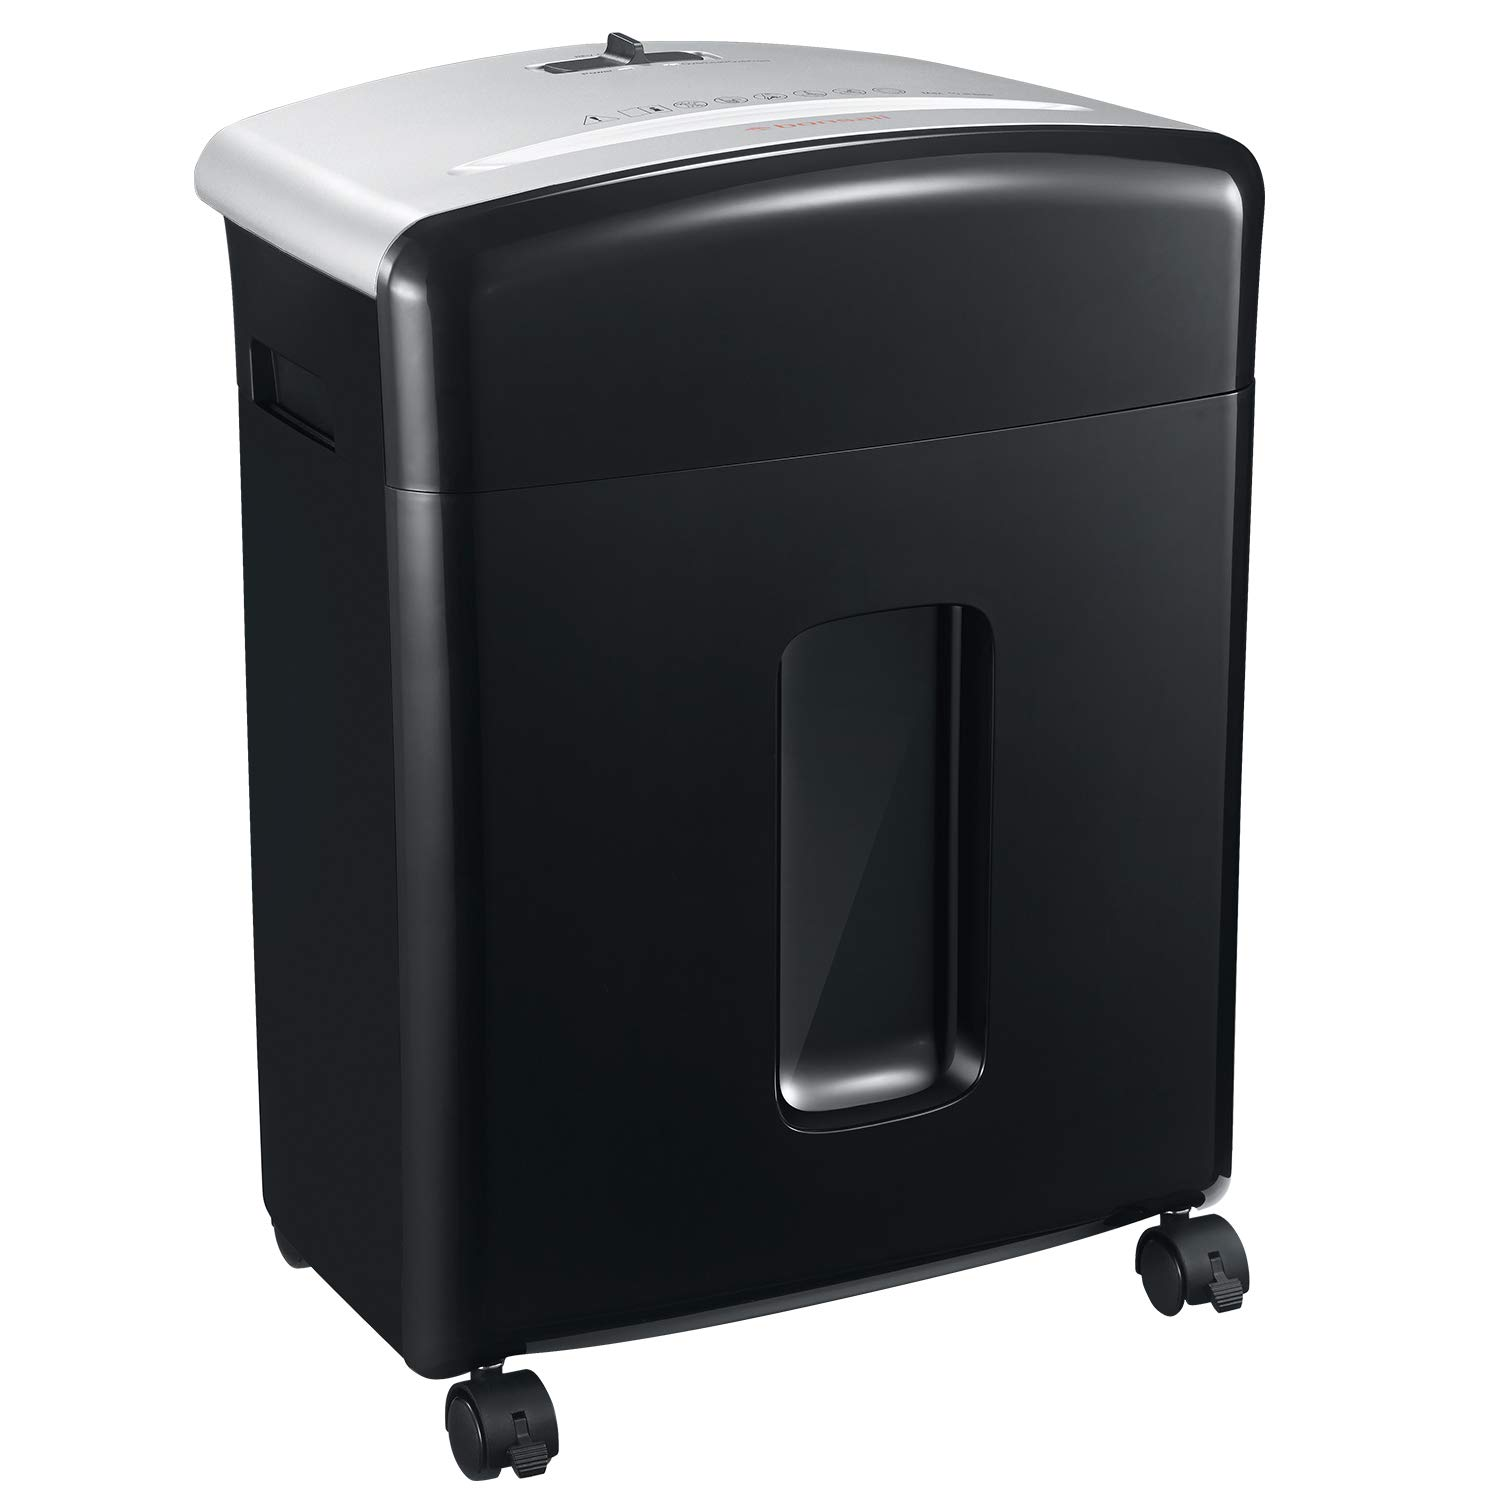 Bonsaii 10-Sheet High-Security Micro-Cut Credit Card Paper Shredder with 3.5 Gallons with Pullout Basket (C220-B)